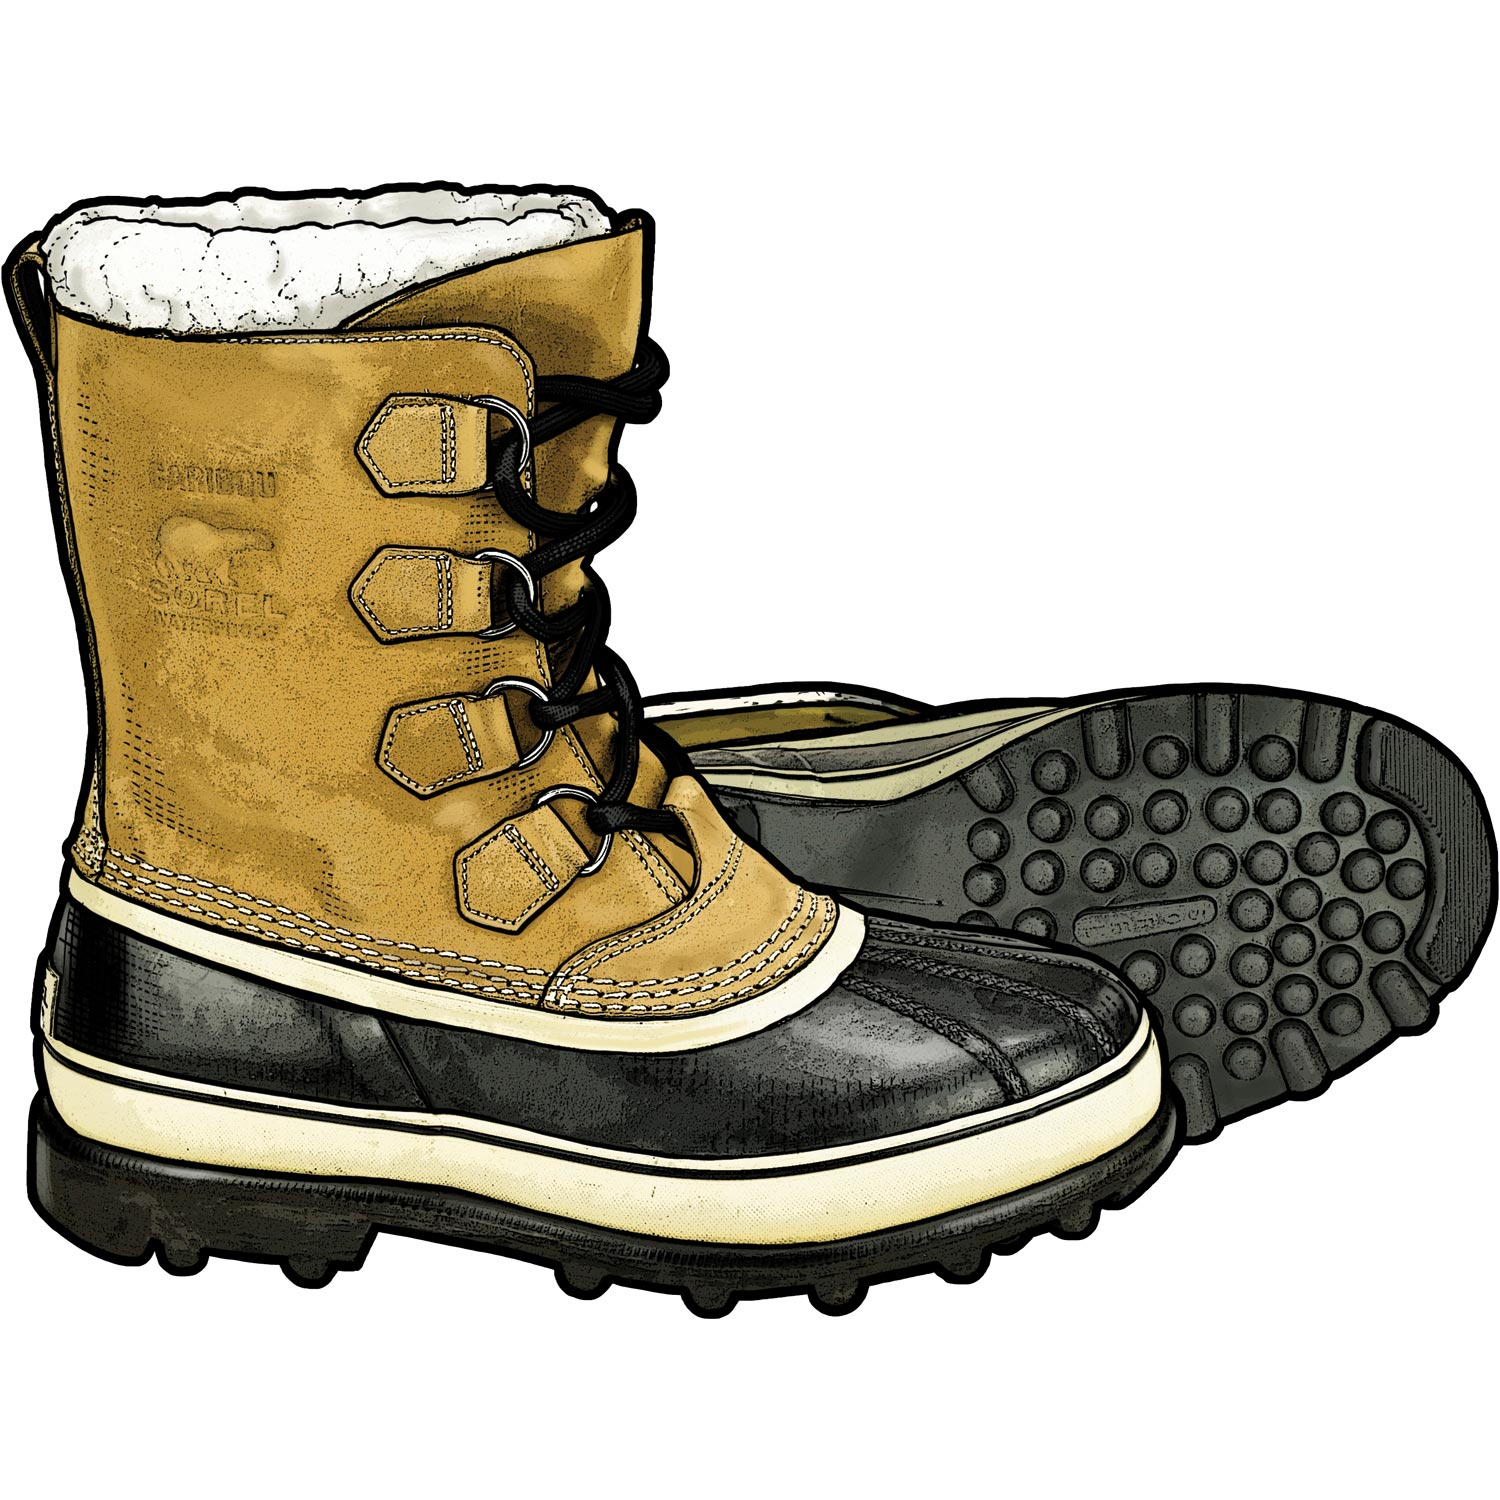 Snow boot clipart 2 » Clipart Station clip stock